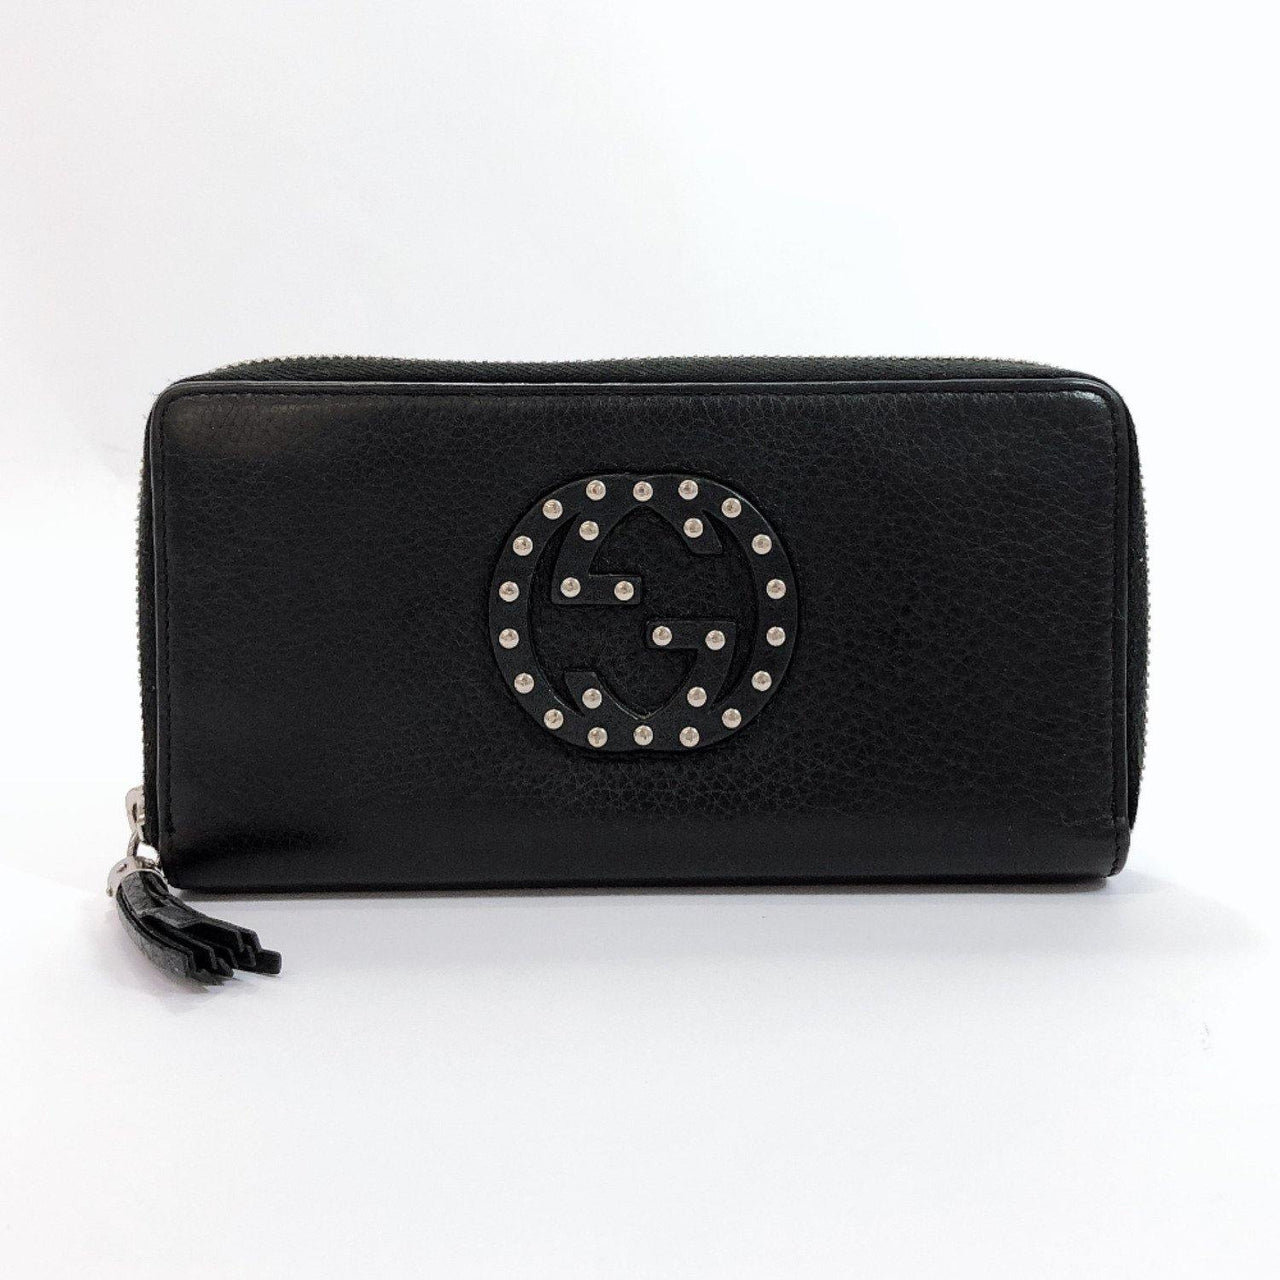 GUCCI purse 308004 Soho Zip Around Interlocking G studs leather black SilverHardware Women Used - JP-BRANDS.com